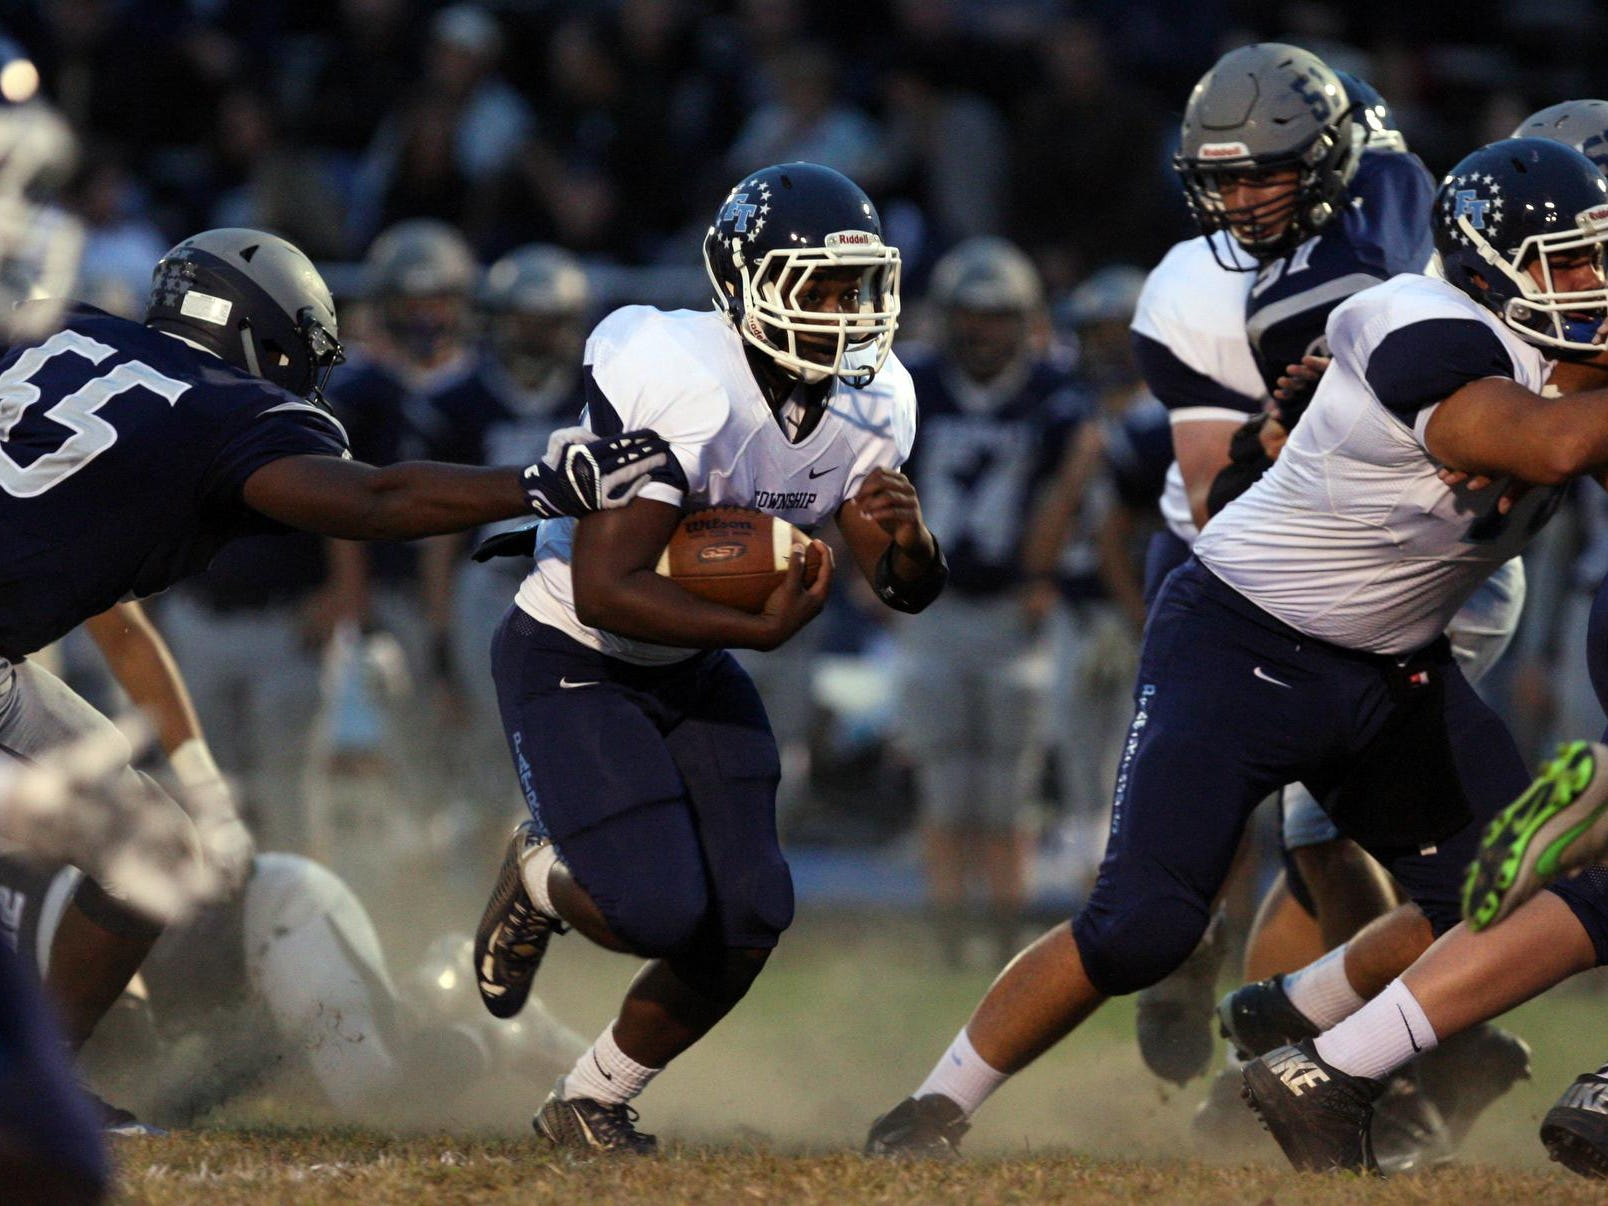 Rychard Hanshaw, #22 Freehold Township, carries the ball against Howell in a football game Friday, September 25, 2015, at Howell High School.